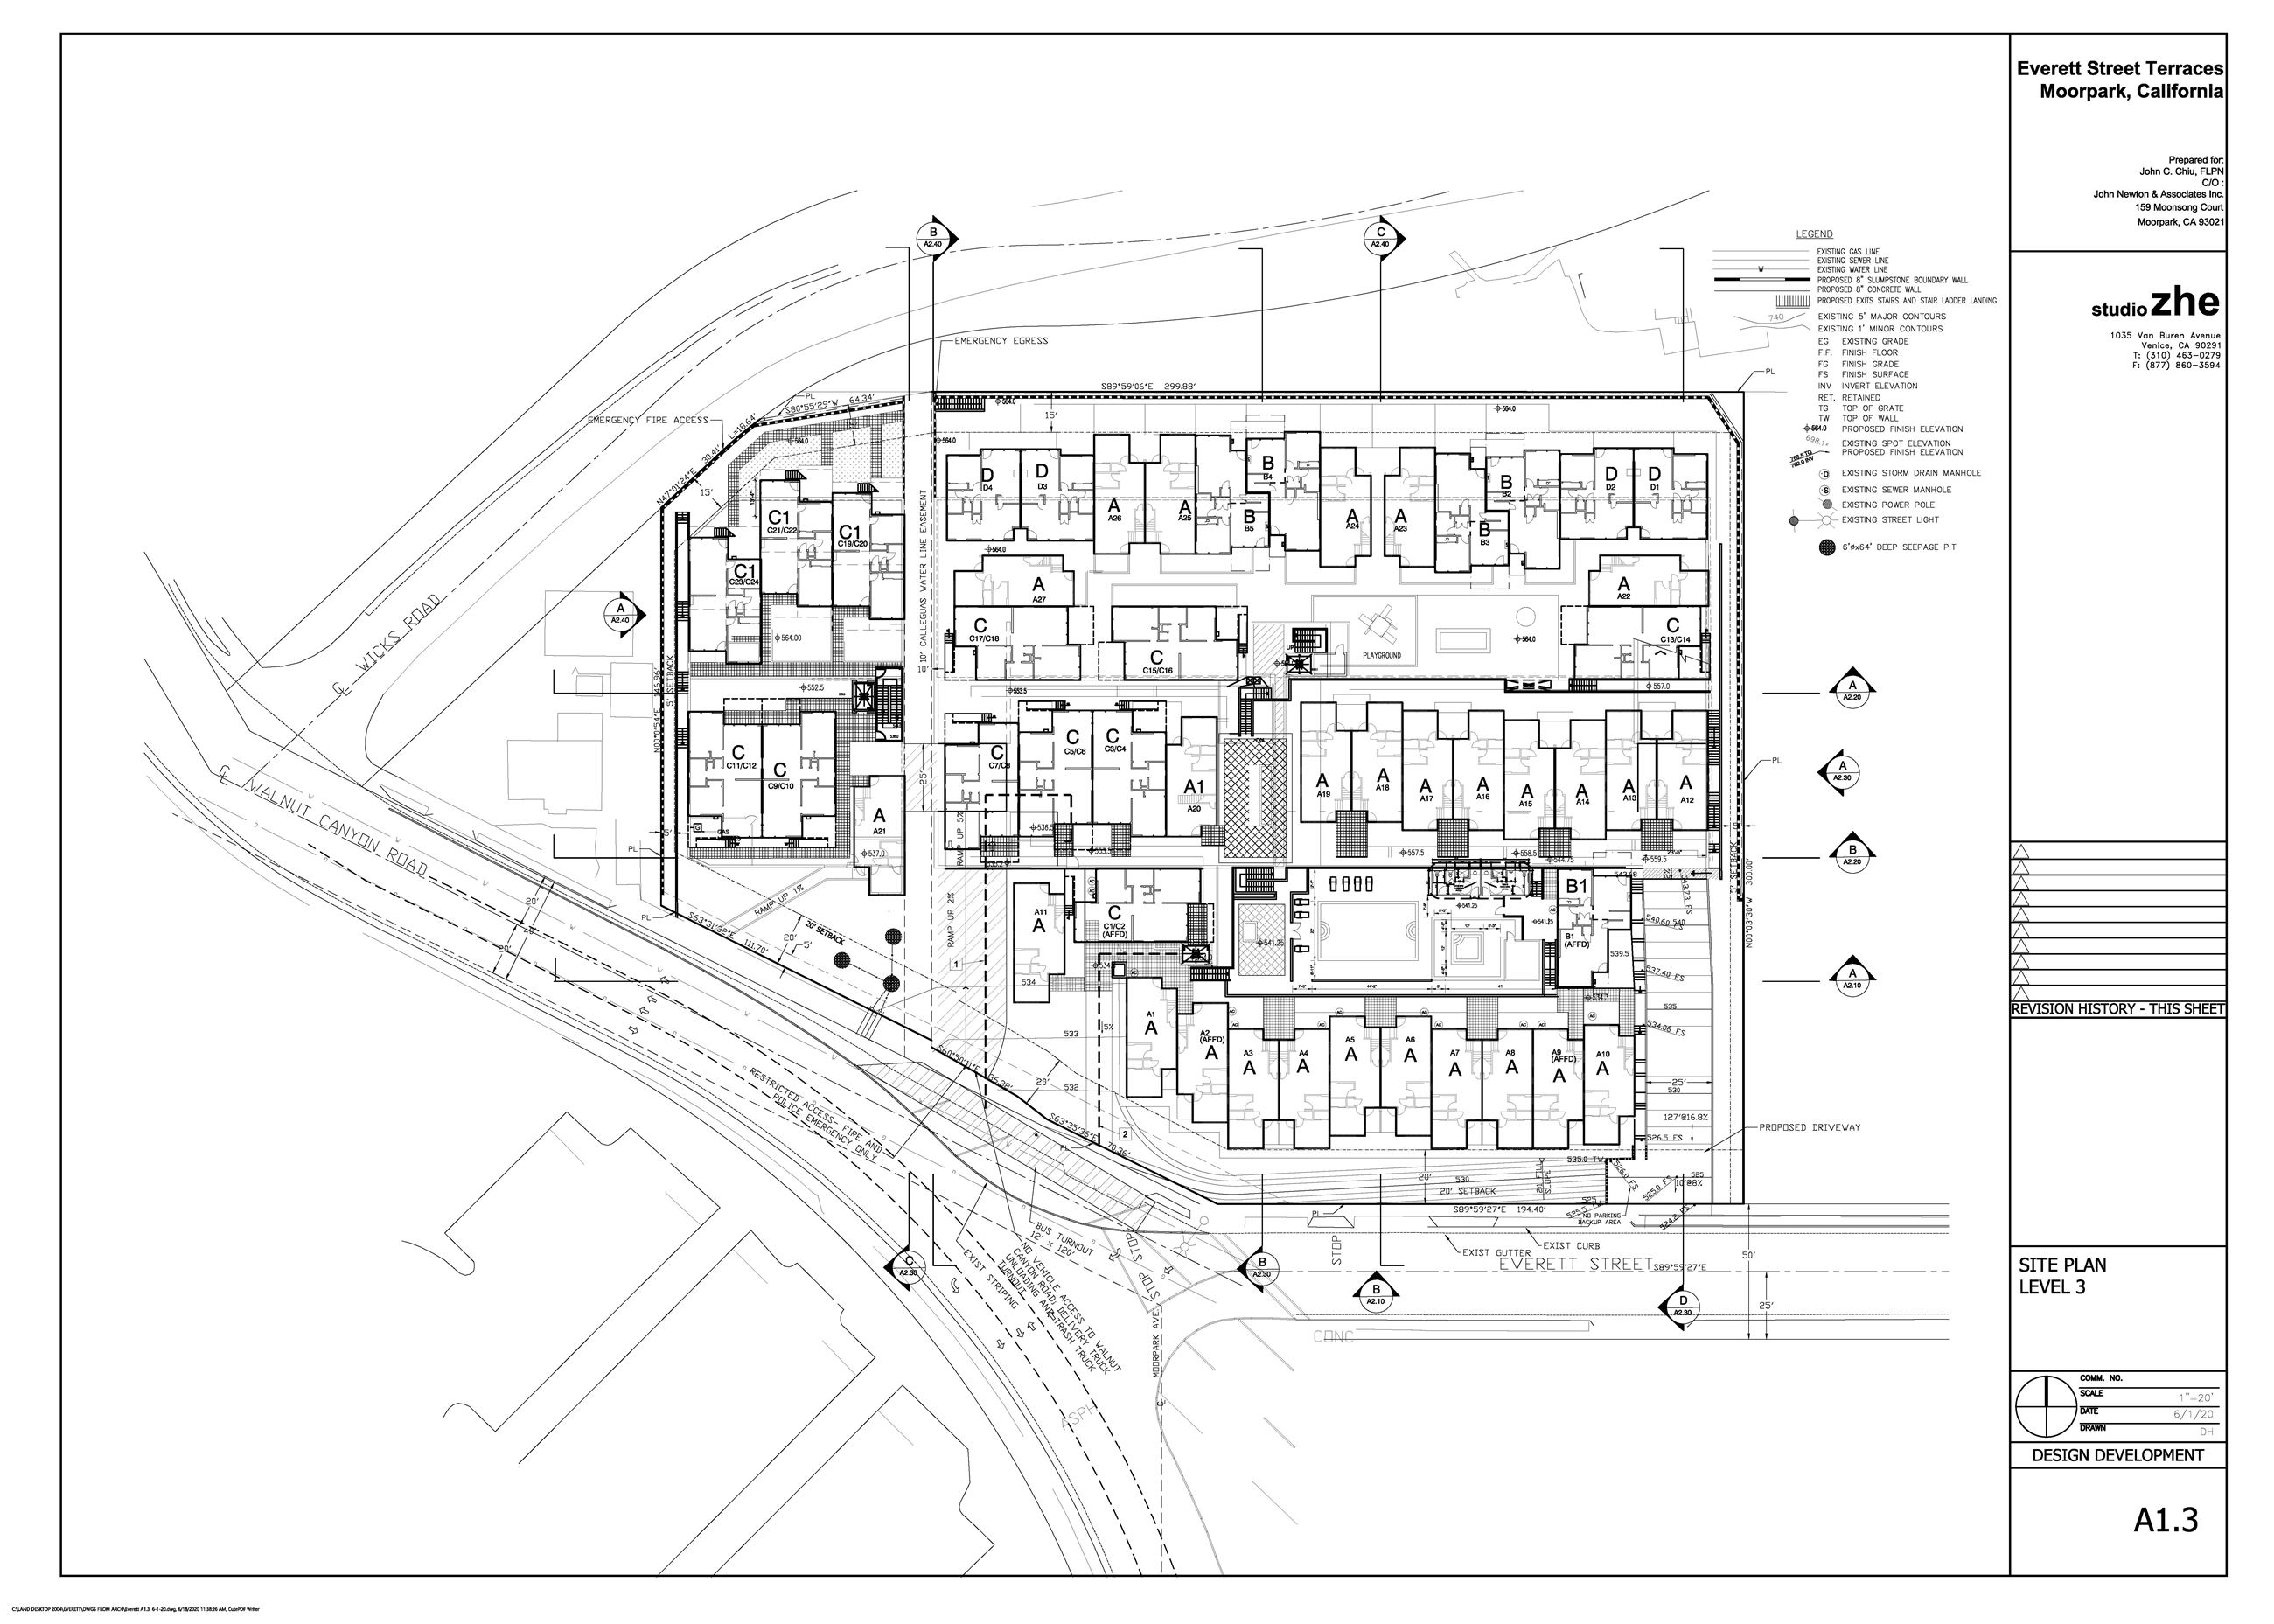 Everett Street Terraces Site Plan